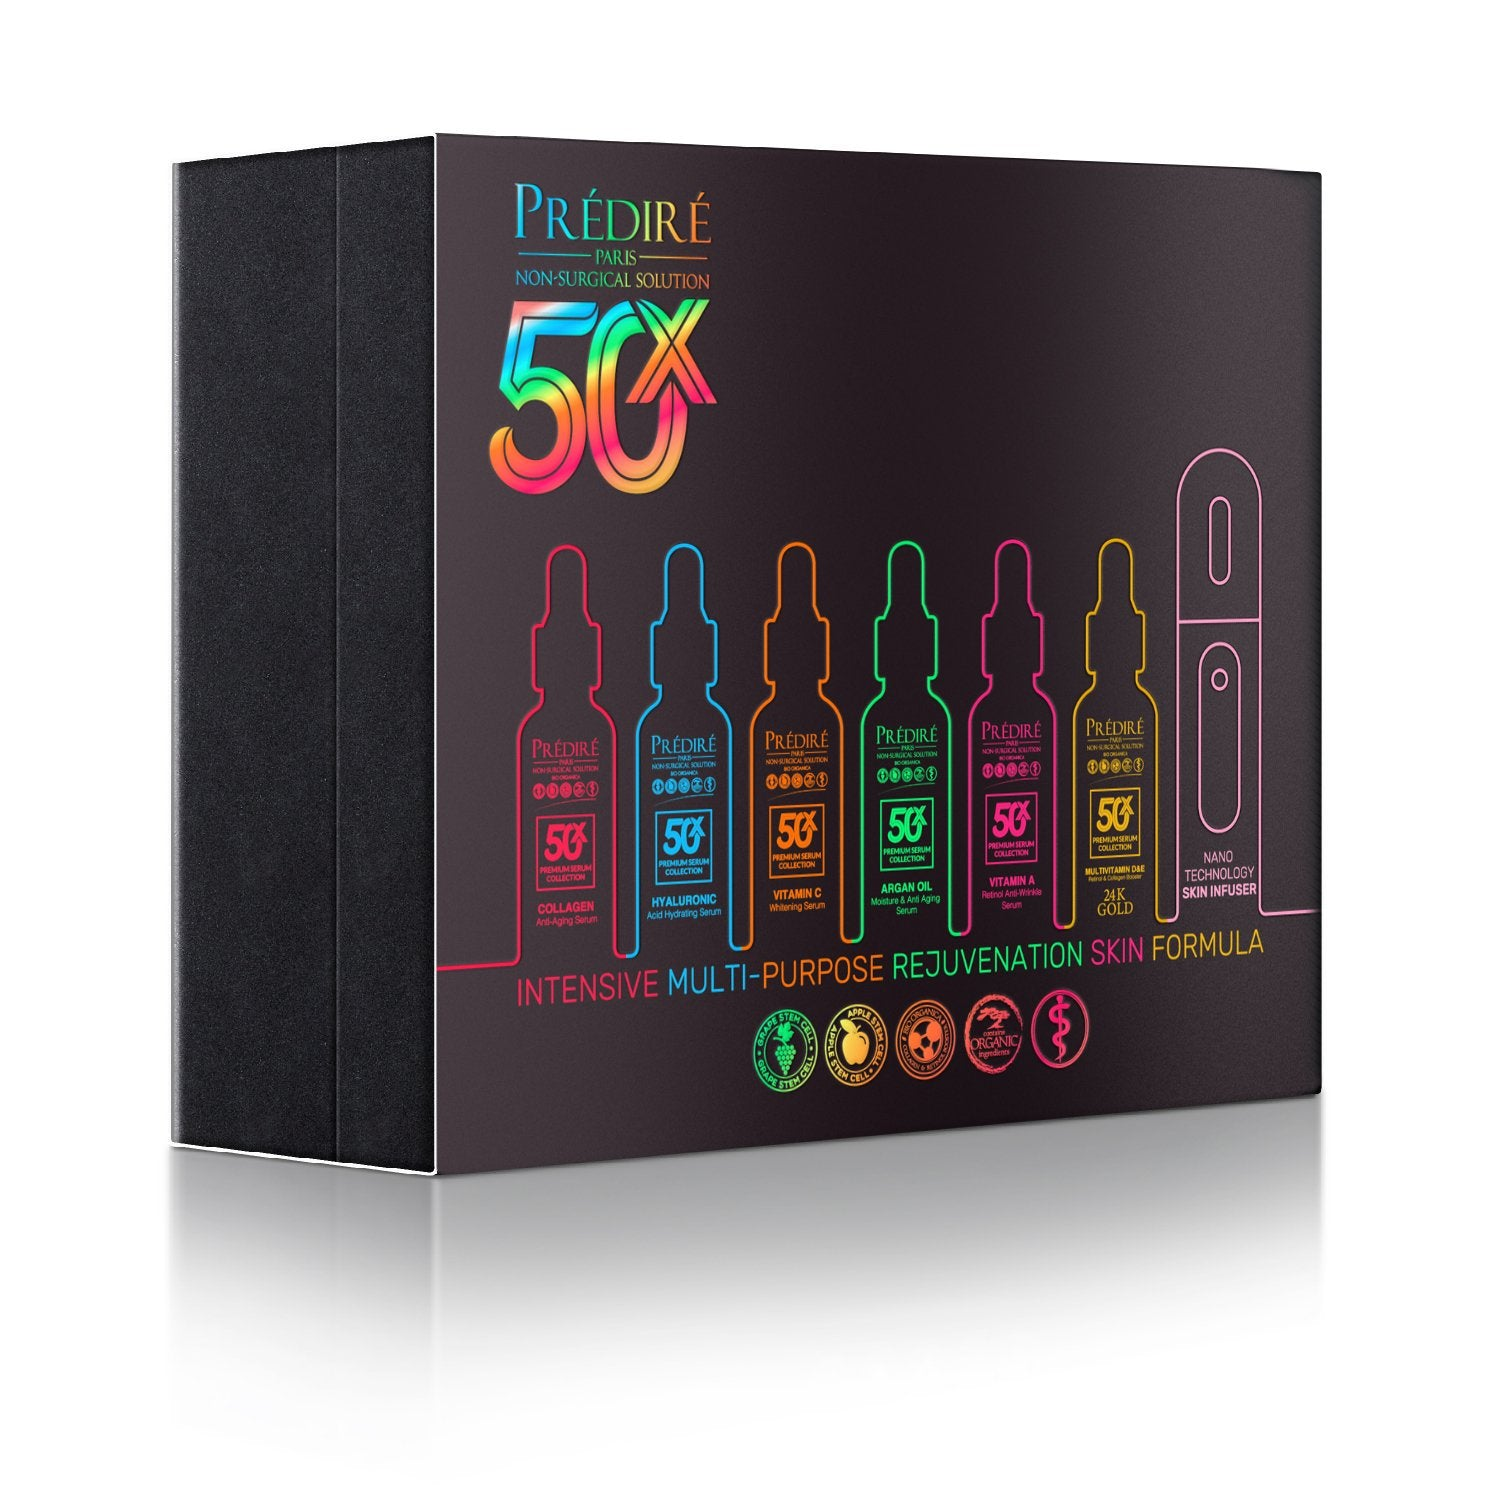 50X Intensive Multi-Purpose Rejuvenation Skin Diffusion Collection